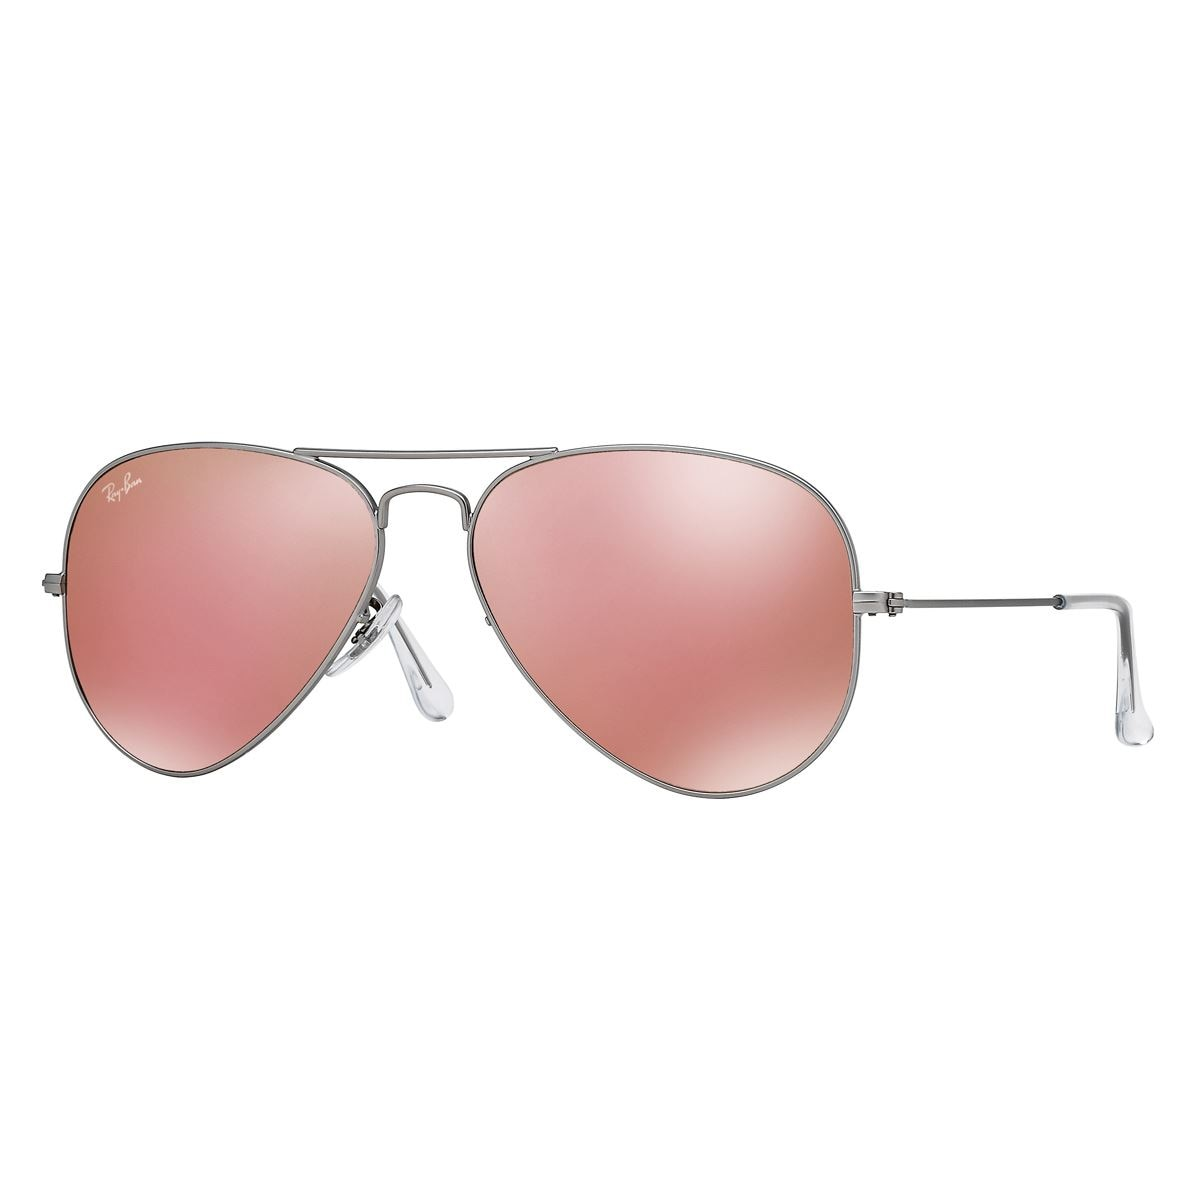 Solar ray ban 0rb3025 019/z258 h  - Sanborns